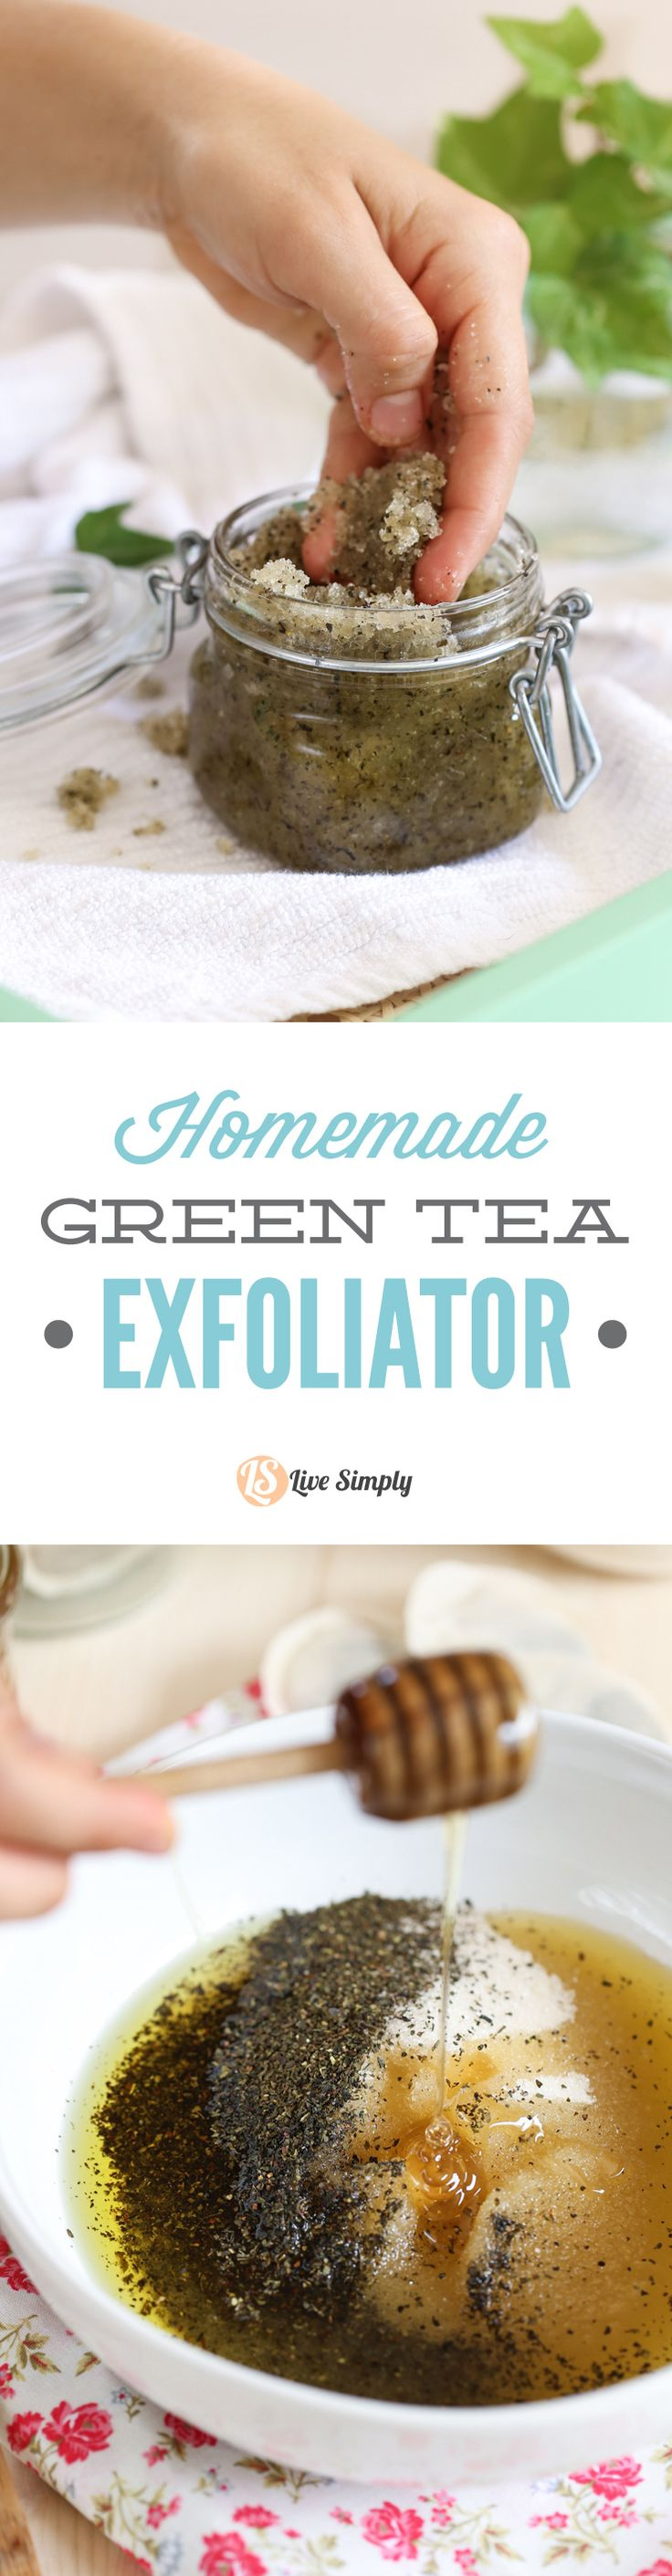 25+ Best Ideas About Exfoliating Scrub On Pinterest  Coffee Ground Scrub,  Homemade Exfoliating Scrub And Exfoliating Body Scrub